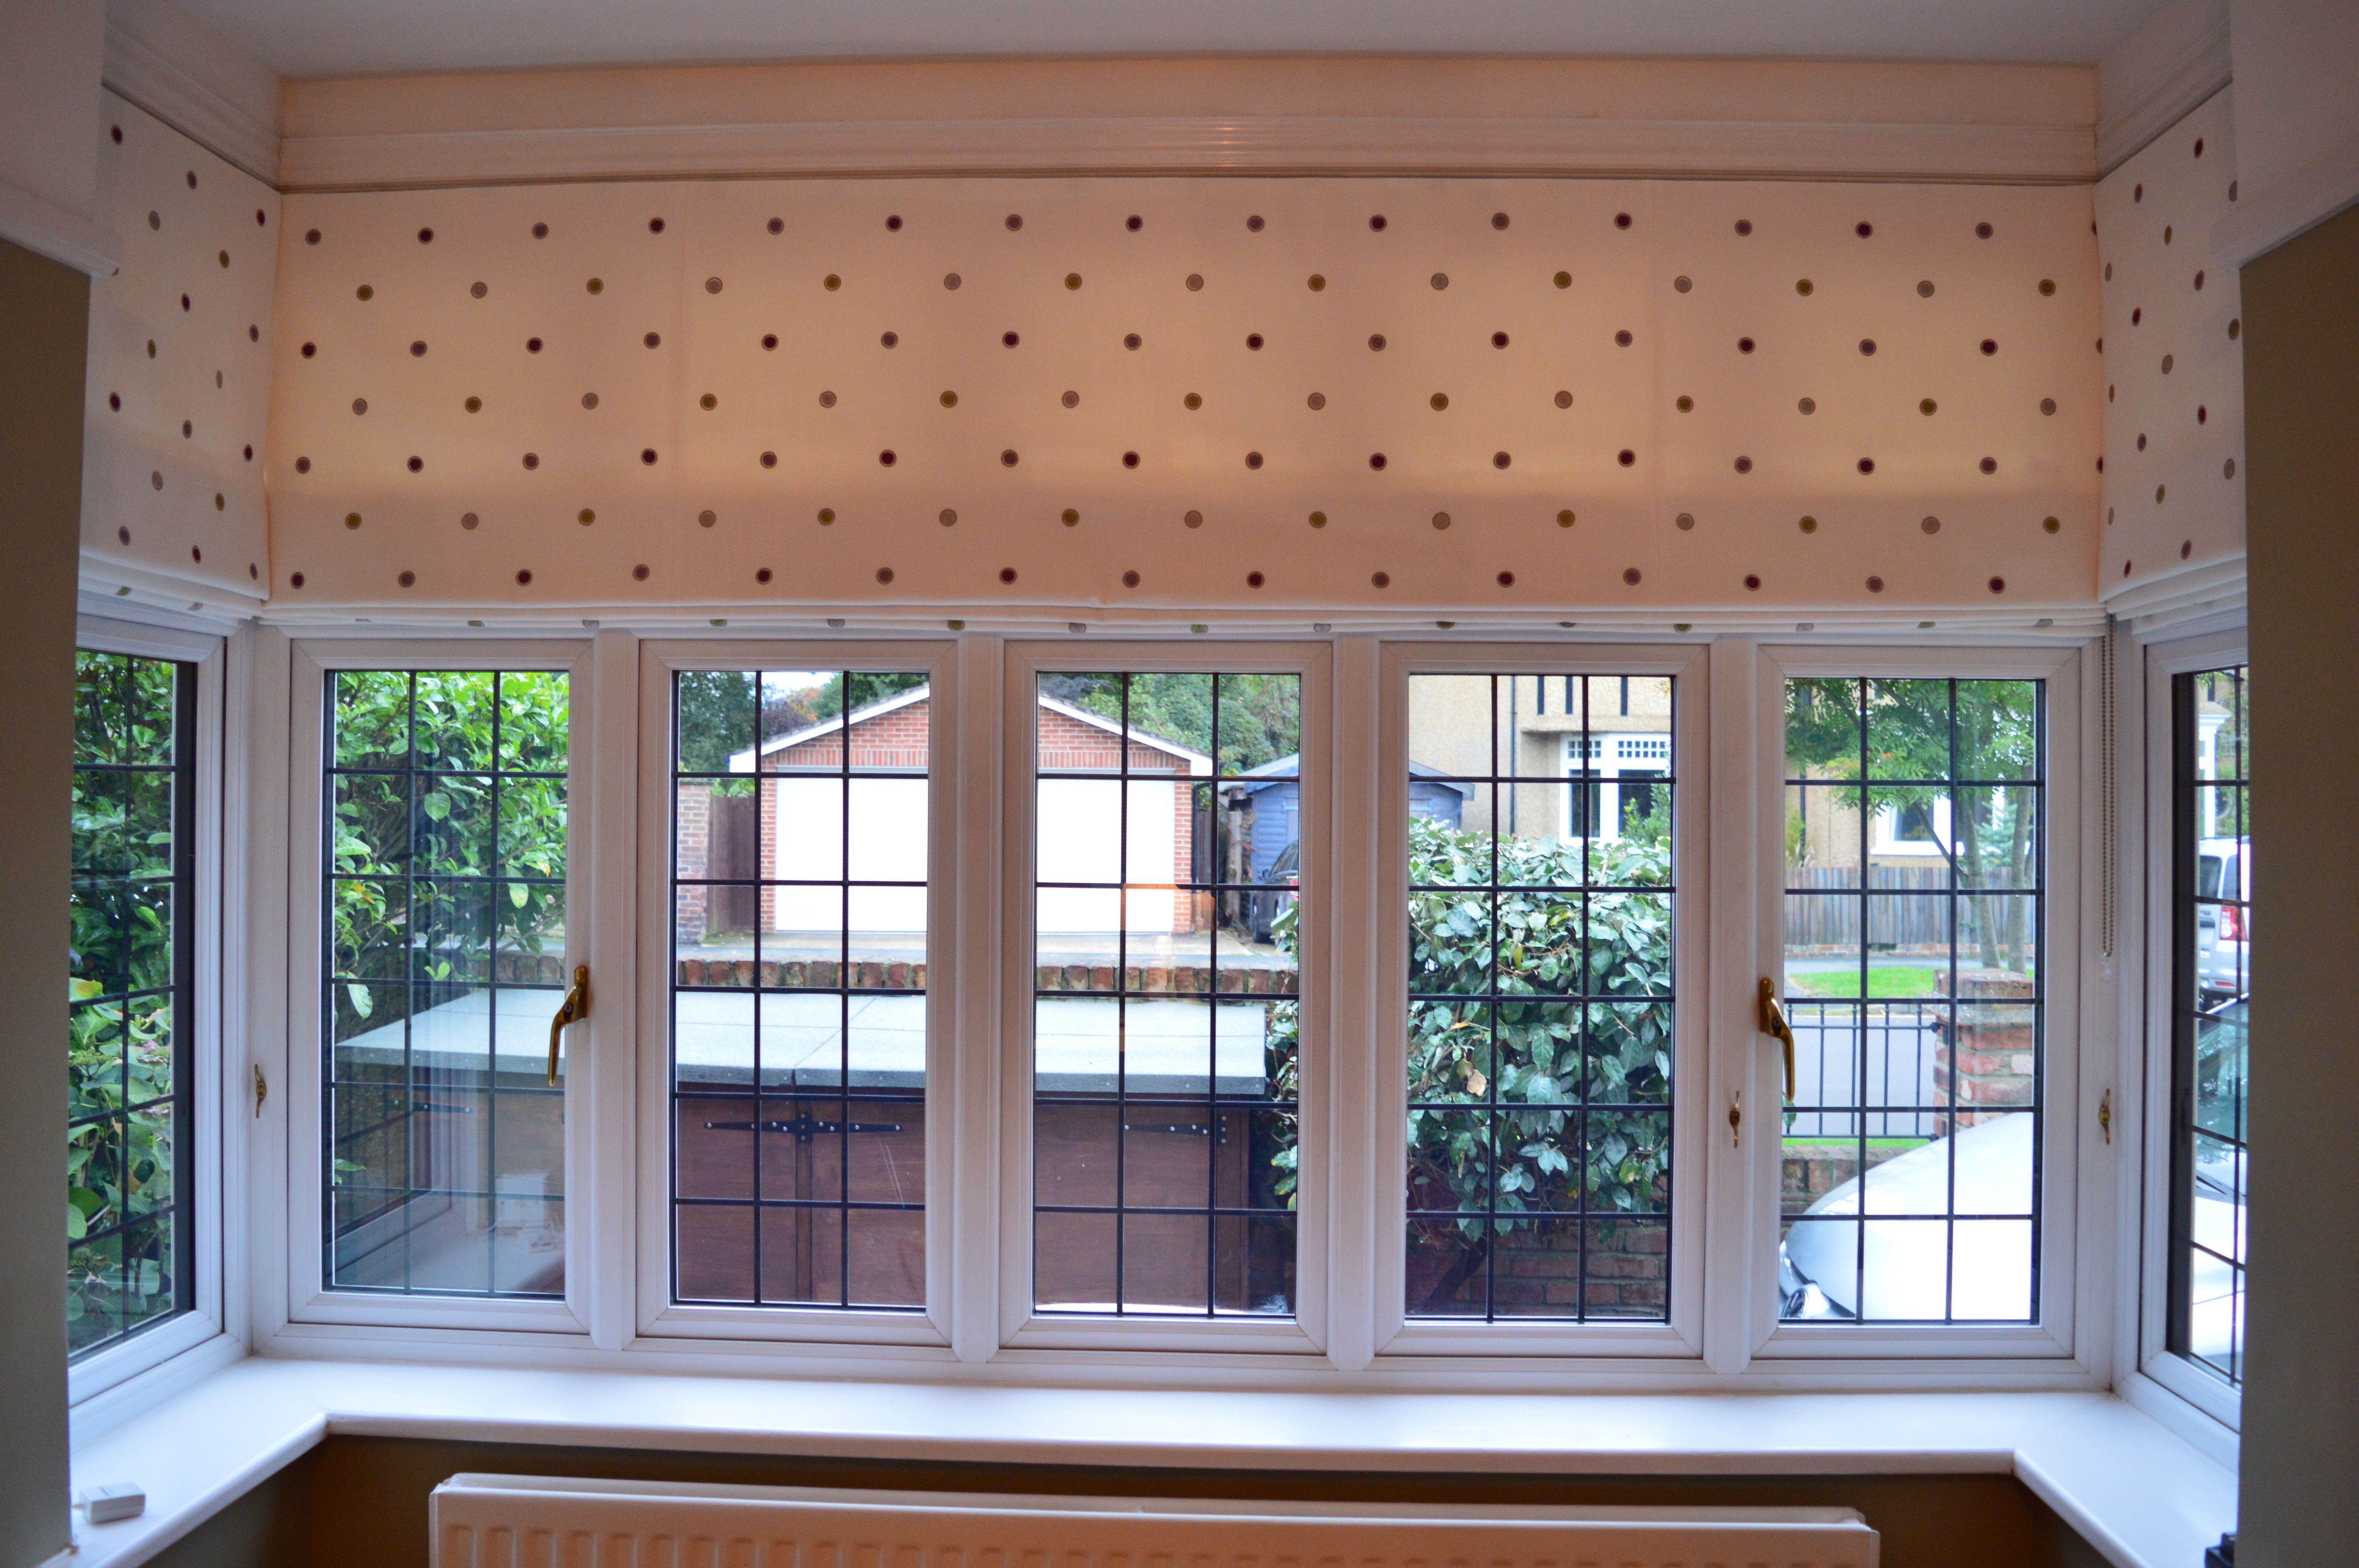 Clarke Amp Clarke Embroidered Spot Fabric On 3 Roman Blinds